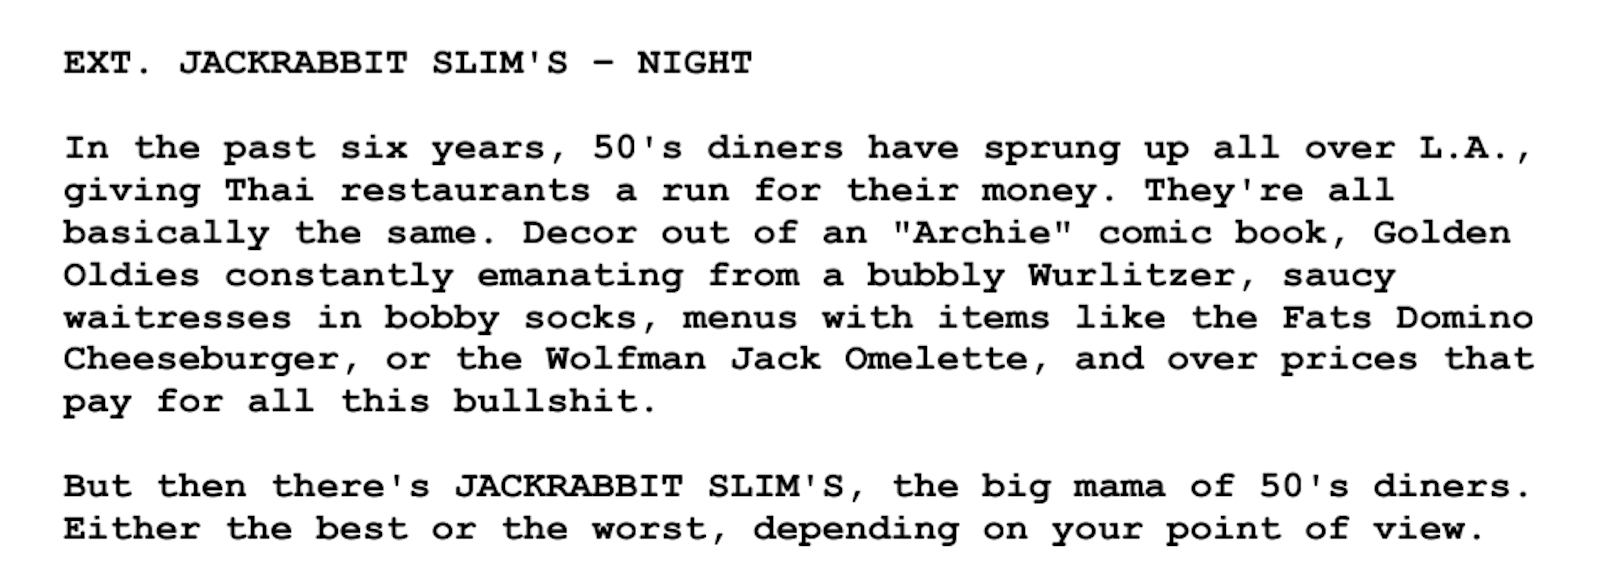 Screenplay Examples - Pulp Fiction Script - Screenplay Snippet 14 - Jackrabbit Slims